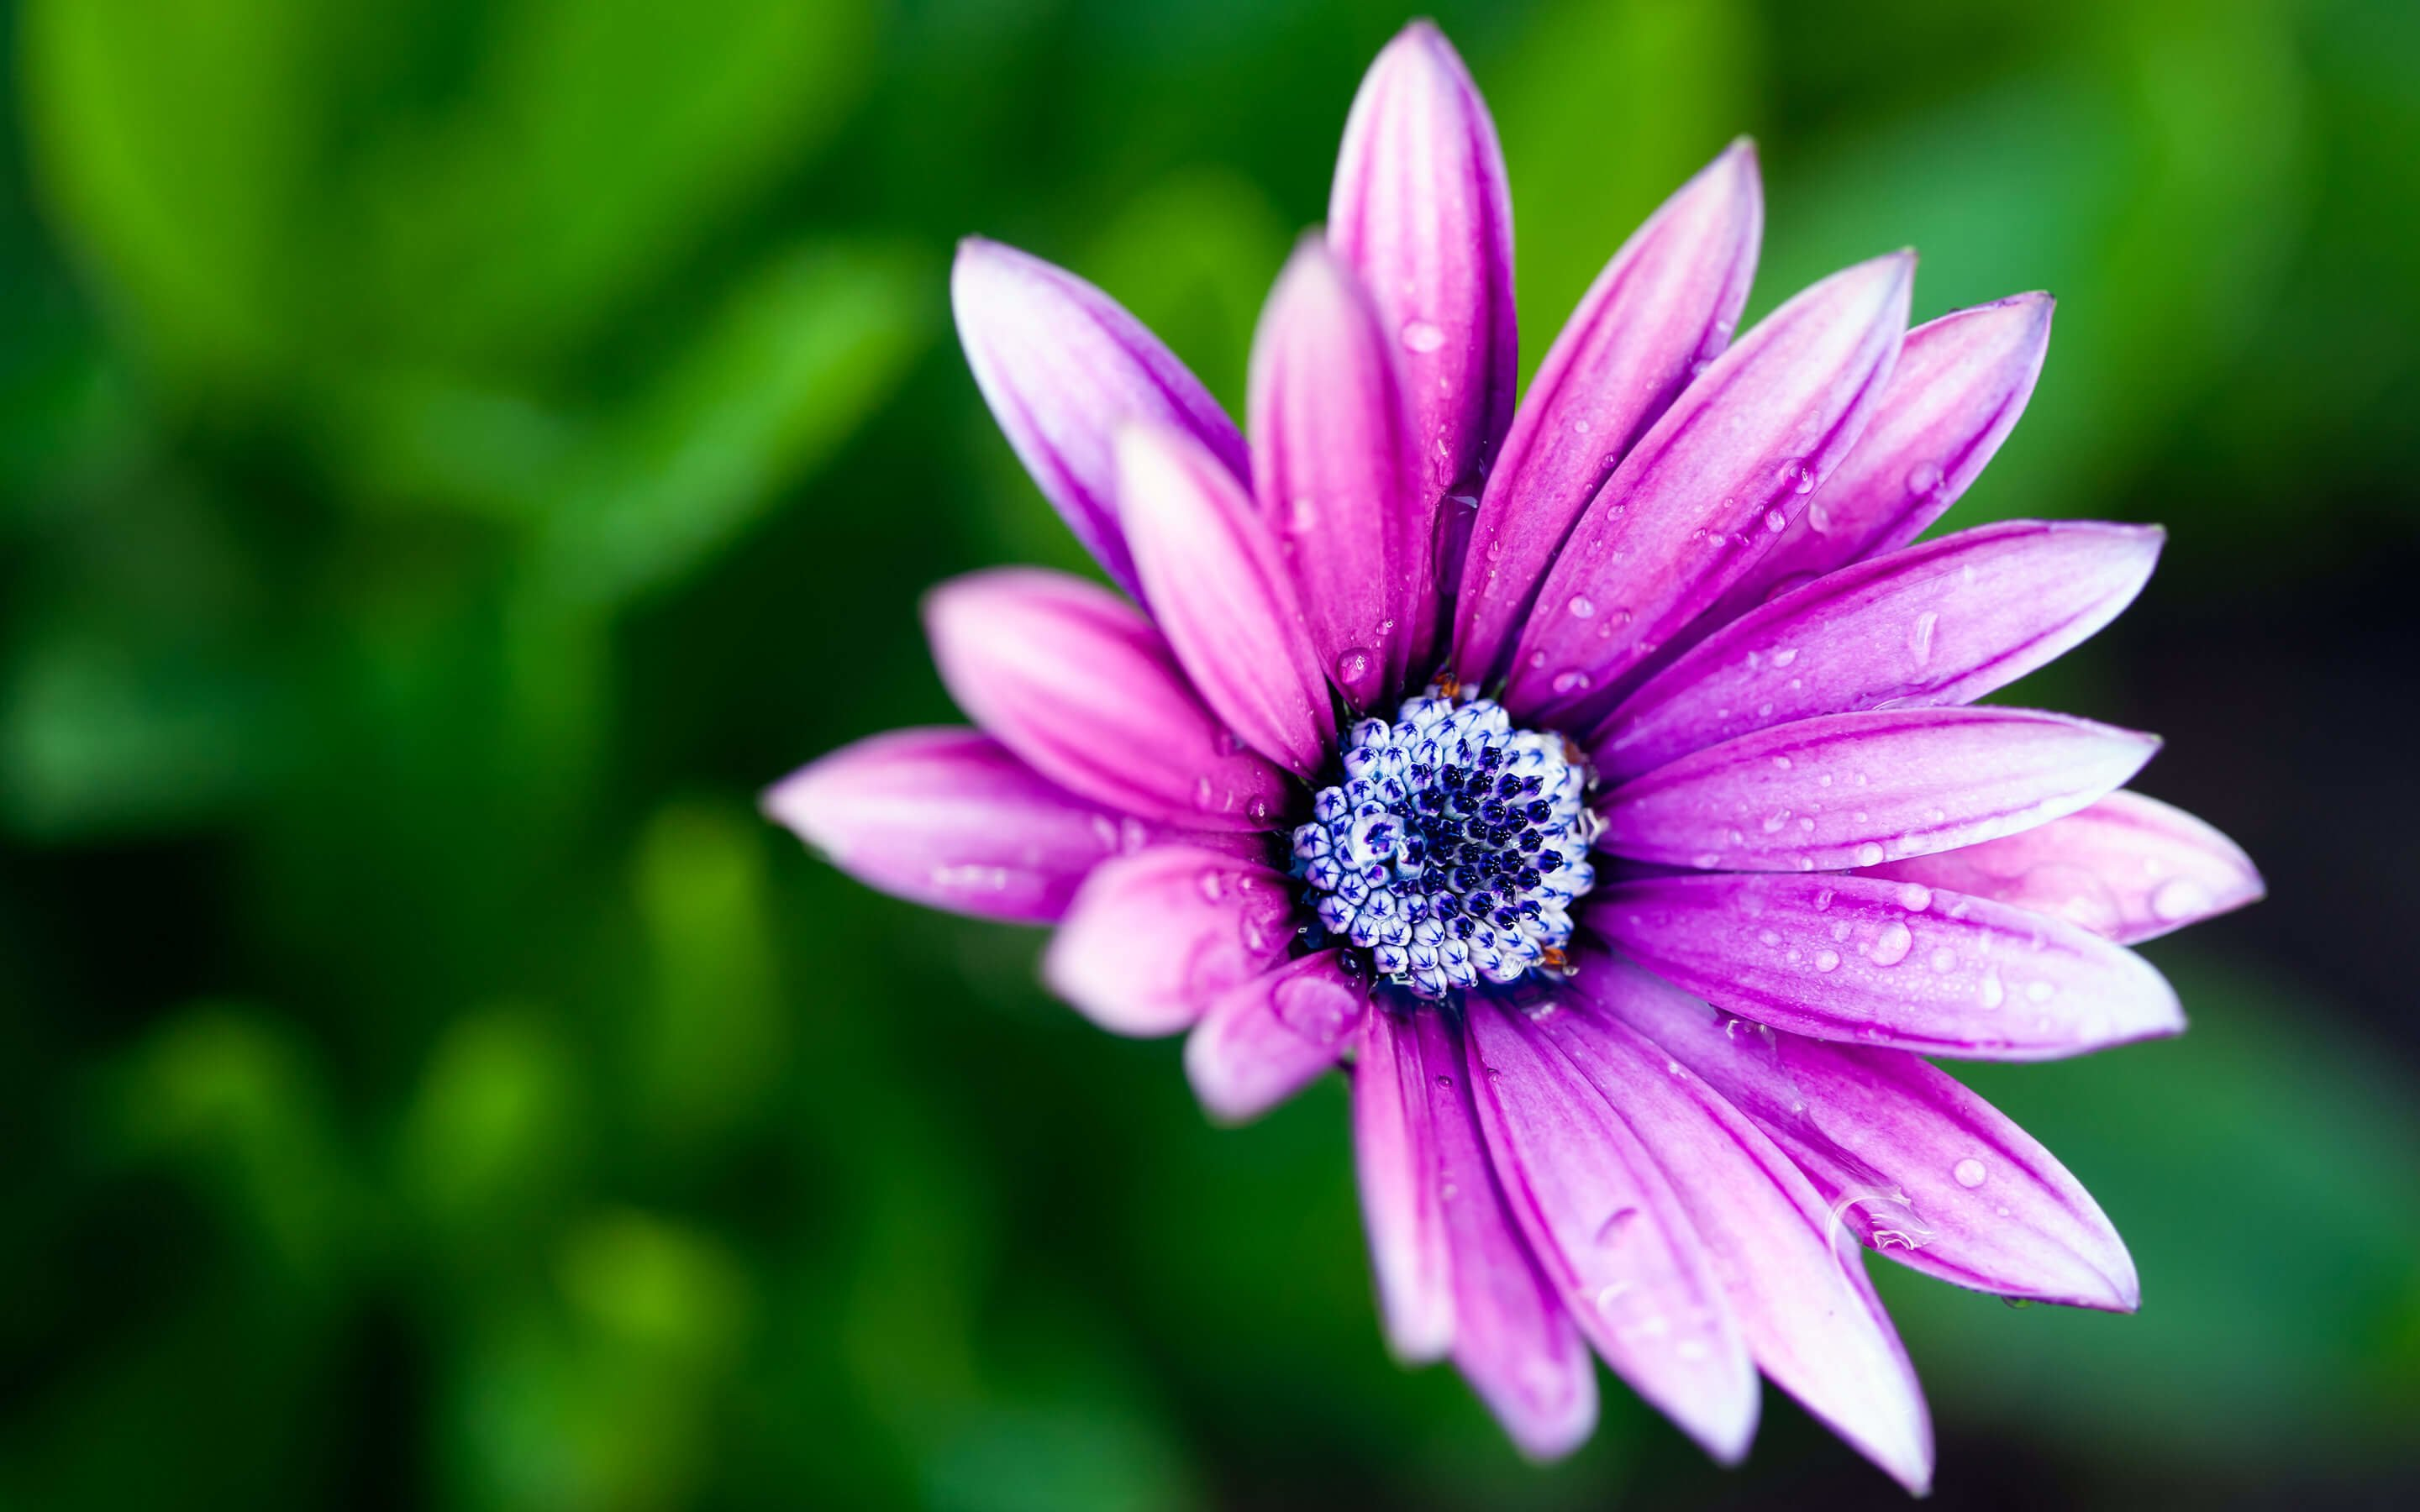 Purple Daisy Wallpaper for Desktop 2880x1800